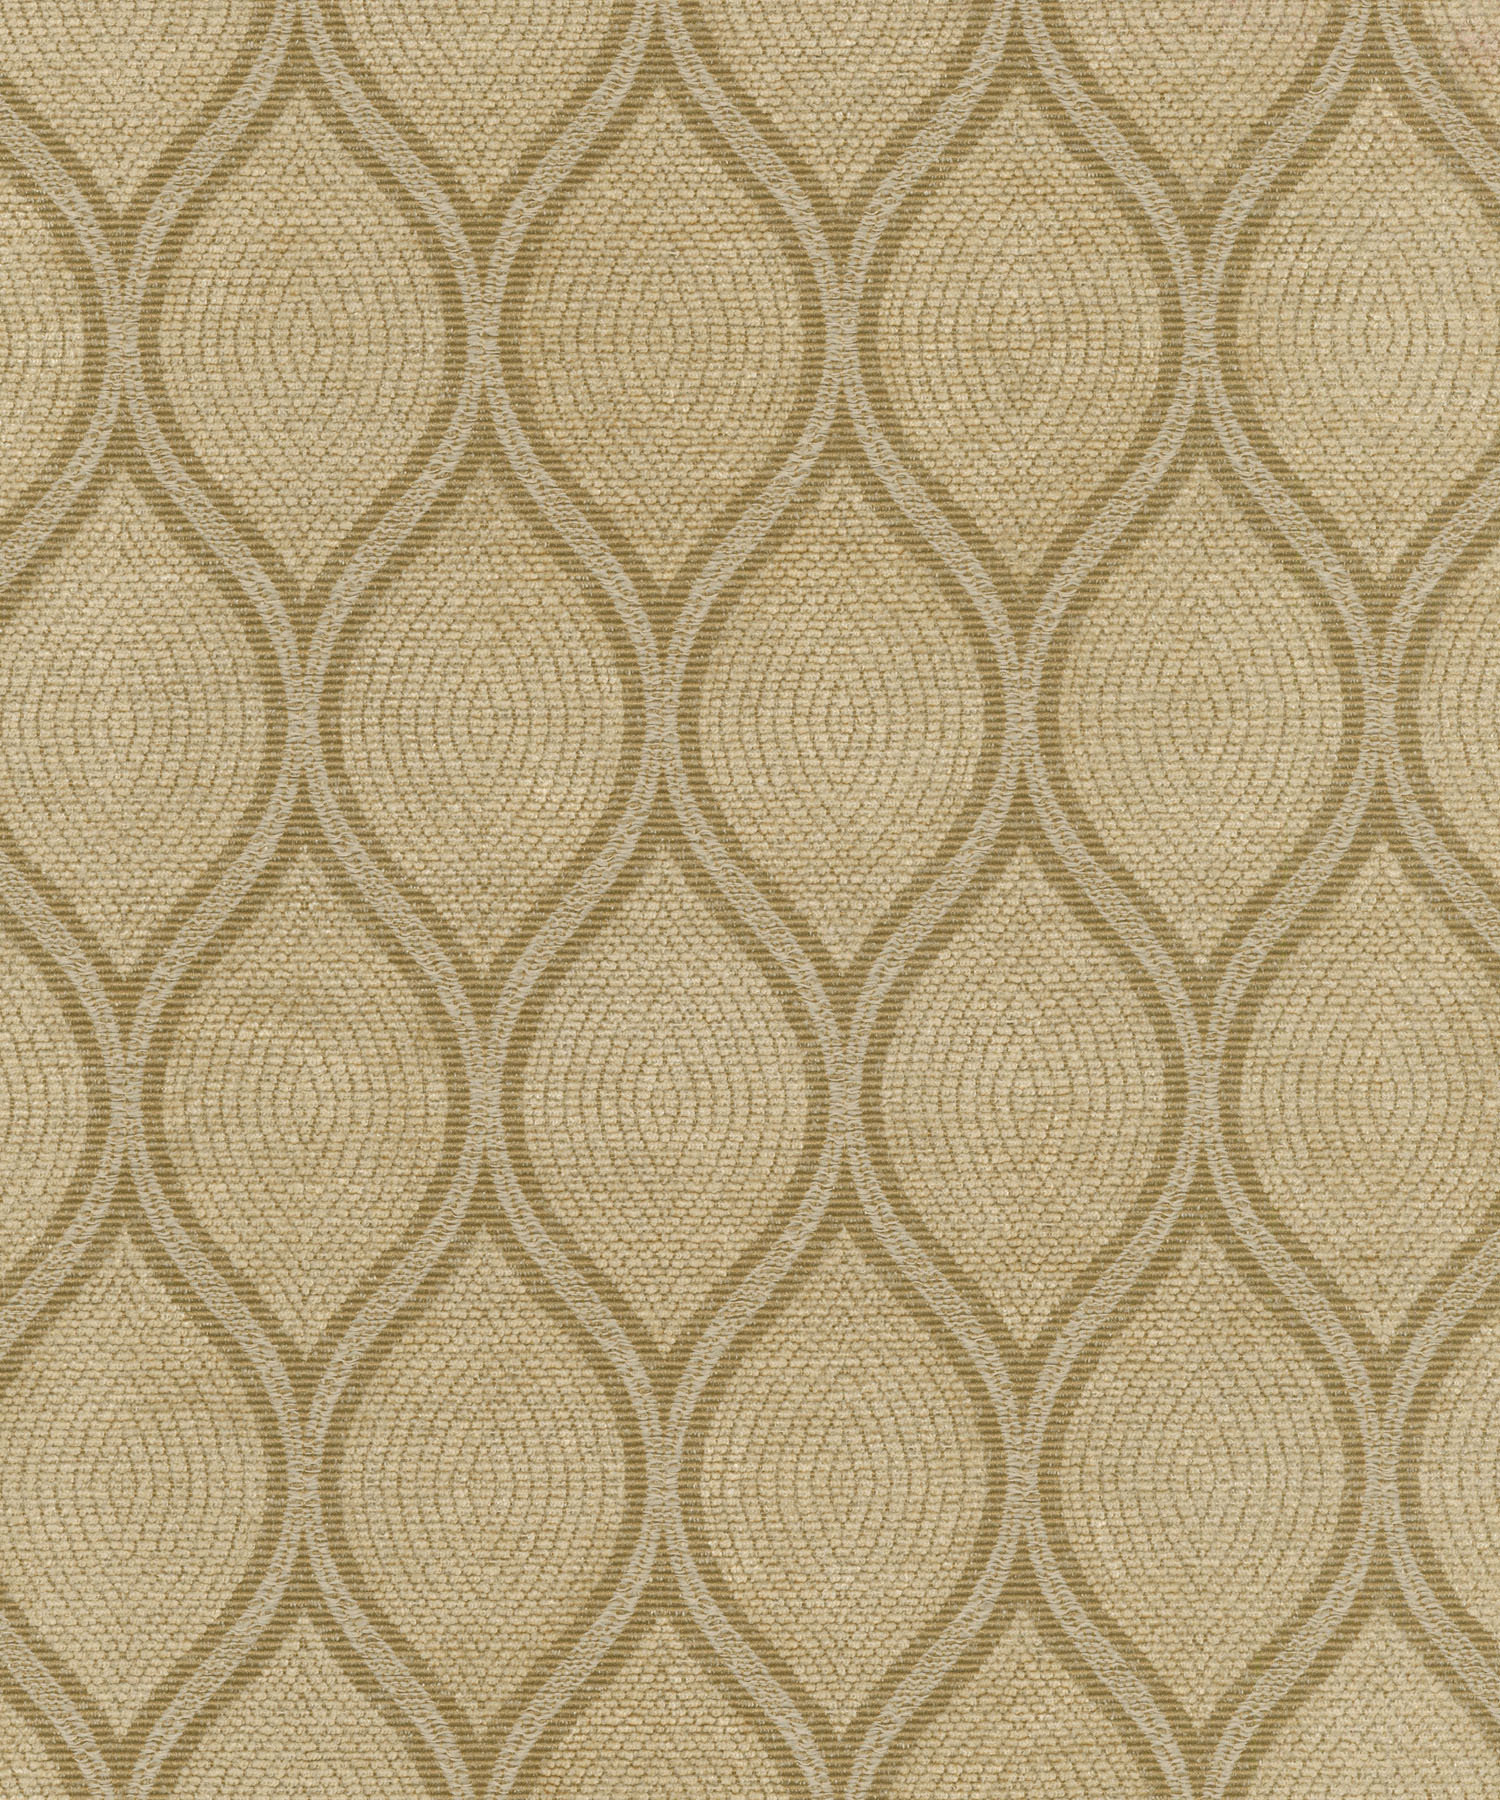 Home Decor 8\u0022x8\u0022 Fabric Swatch-IMAN Home Malta Mica